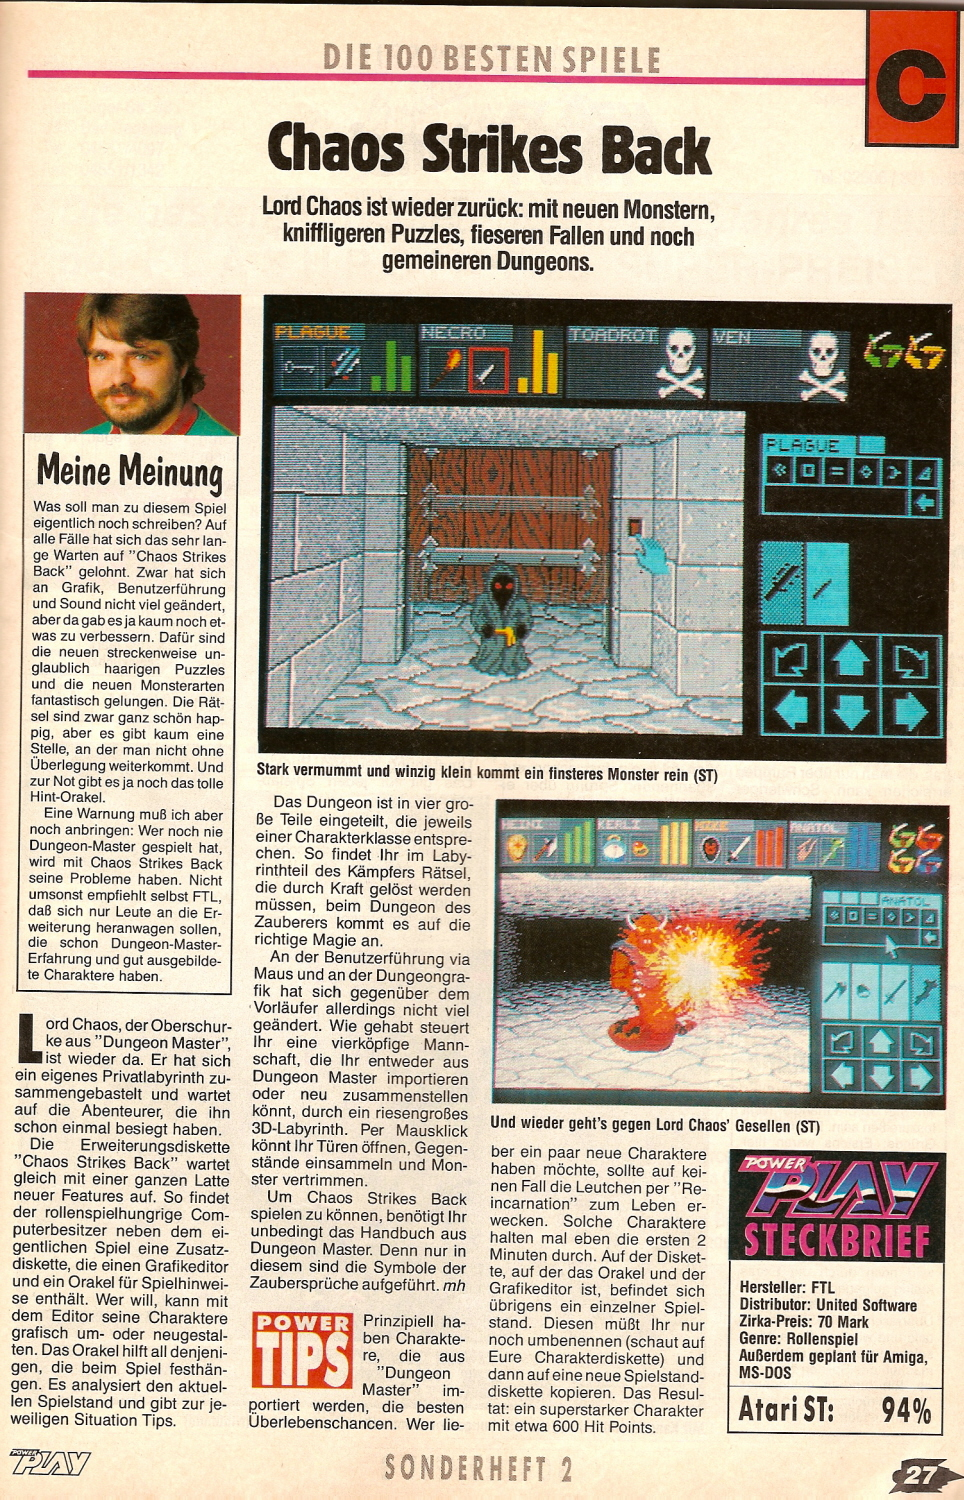 Chaos Strikes Back for Atari ST Review published in German magazine 'PowerPlay', The Top 100 Games of 1990, Page 27